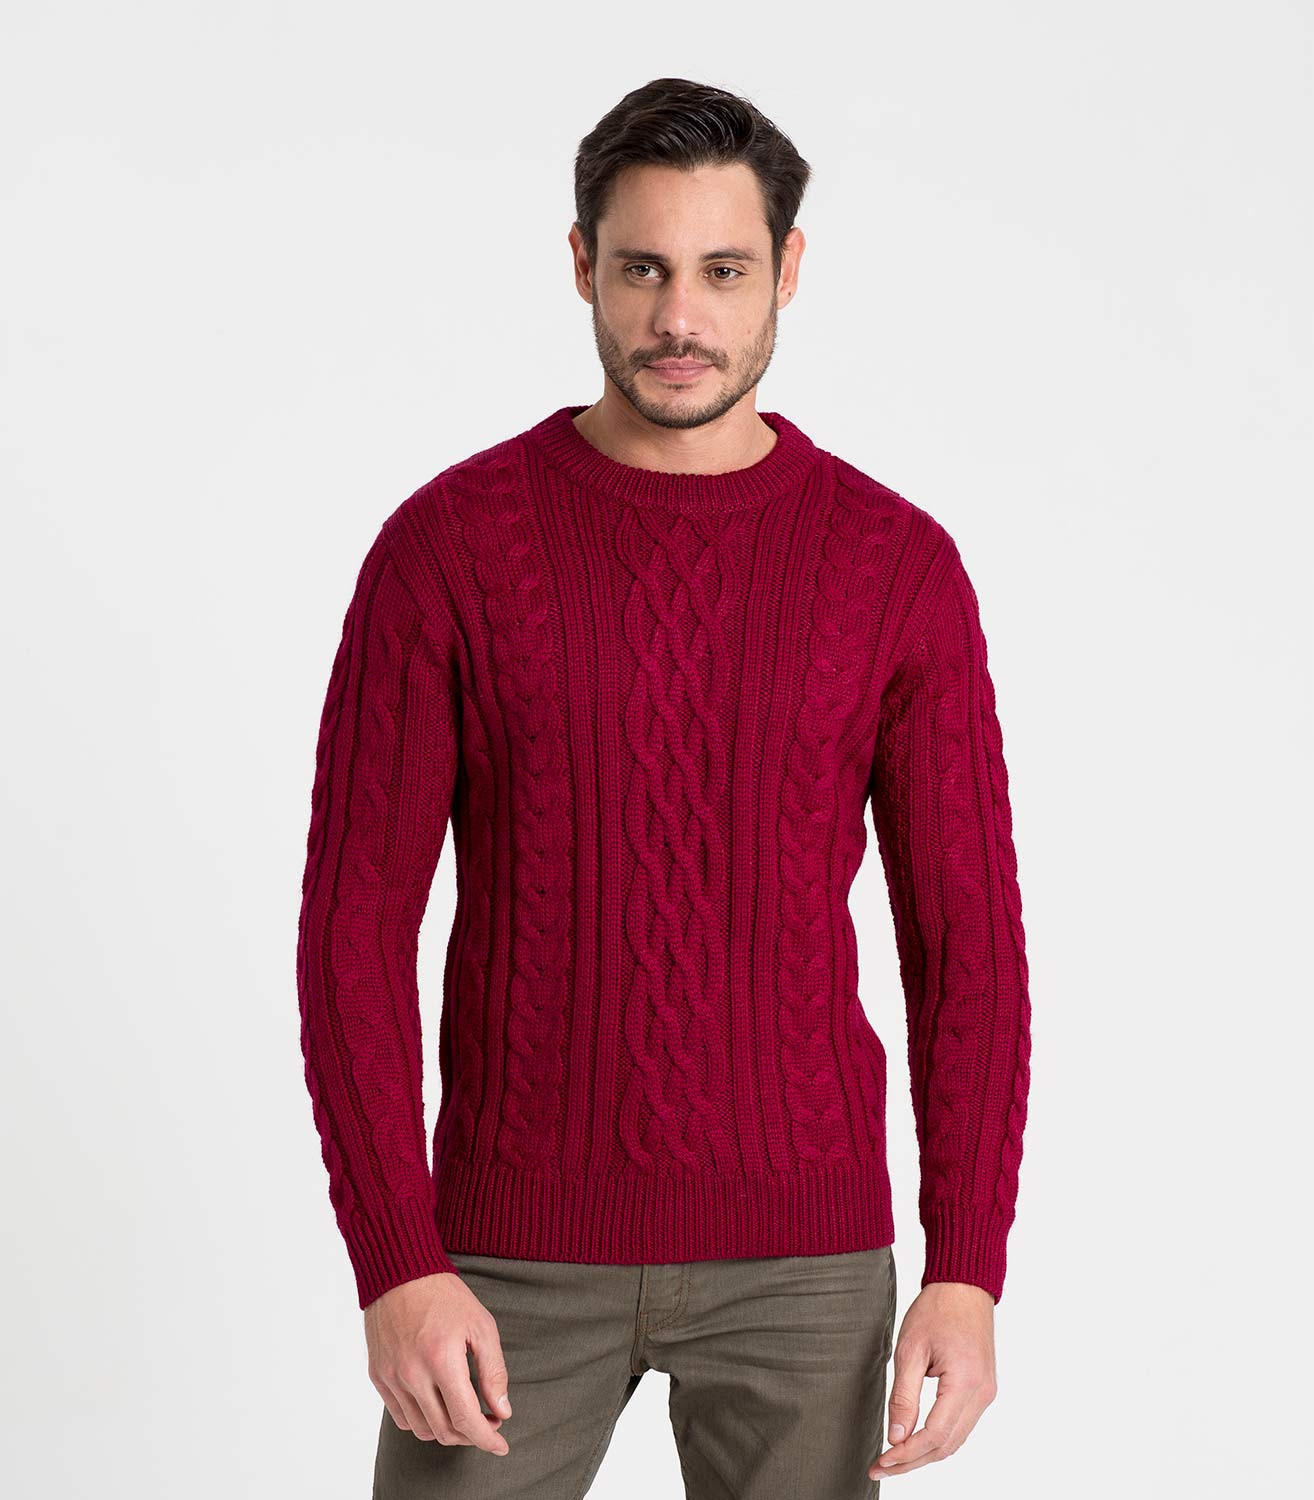 Mens Knit Sweater Inspirational Burgundy Pure Wool Of Perfect 42 Pictures Mens Knit Sweater